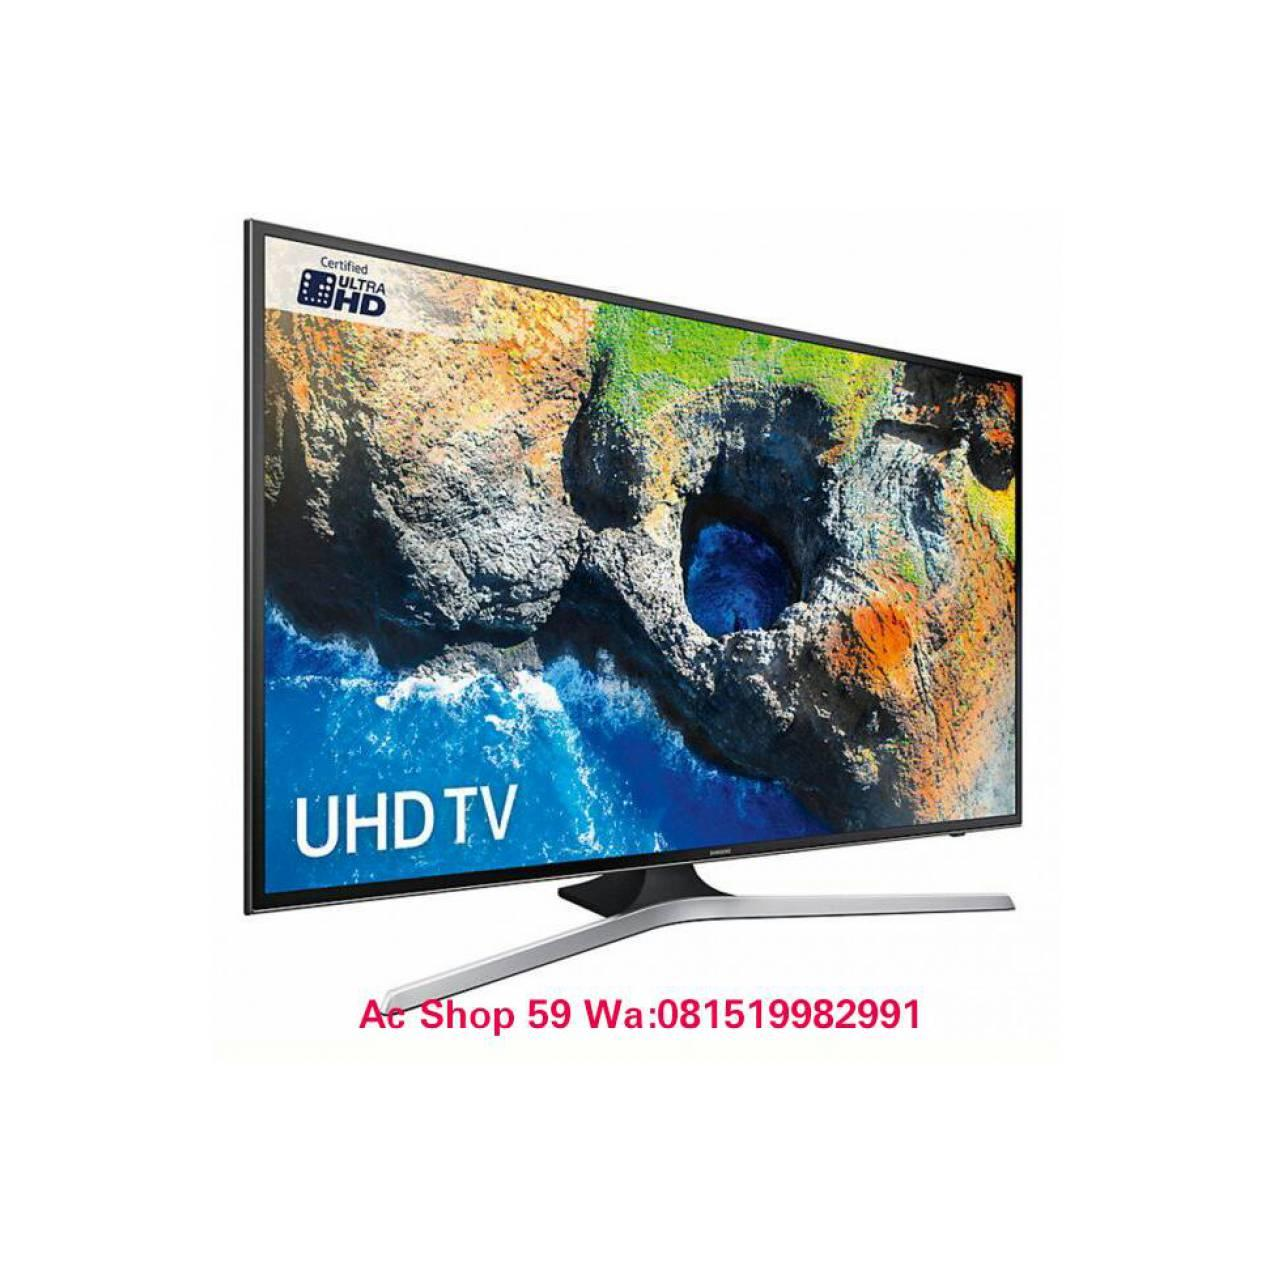 TV LED SAMSUNG 50 MU6100 ULTRA HD 4K SMART TV 50 INCH HDR NEW 2017